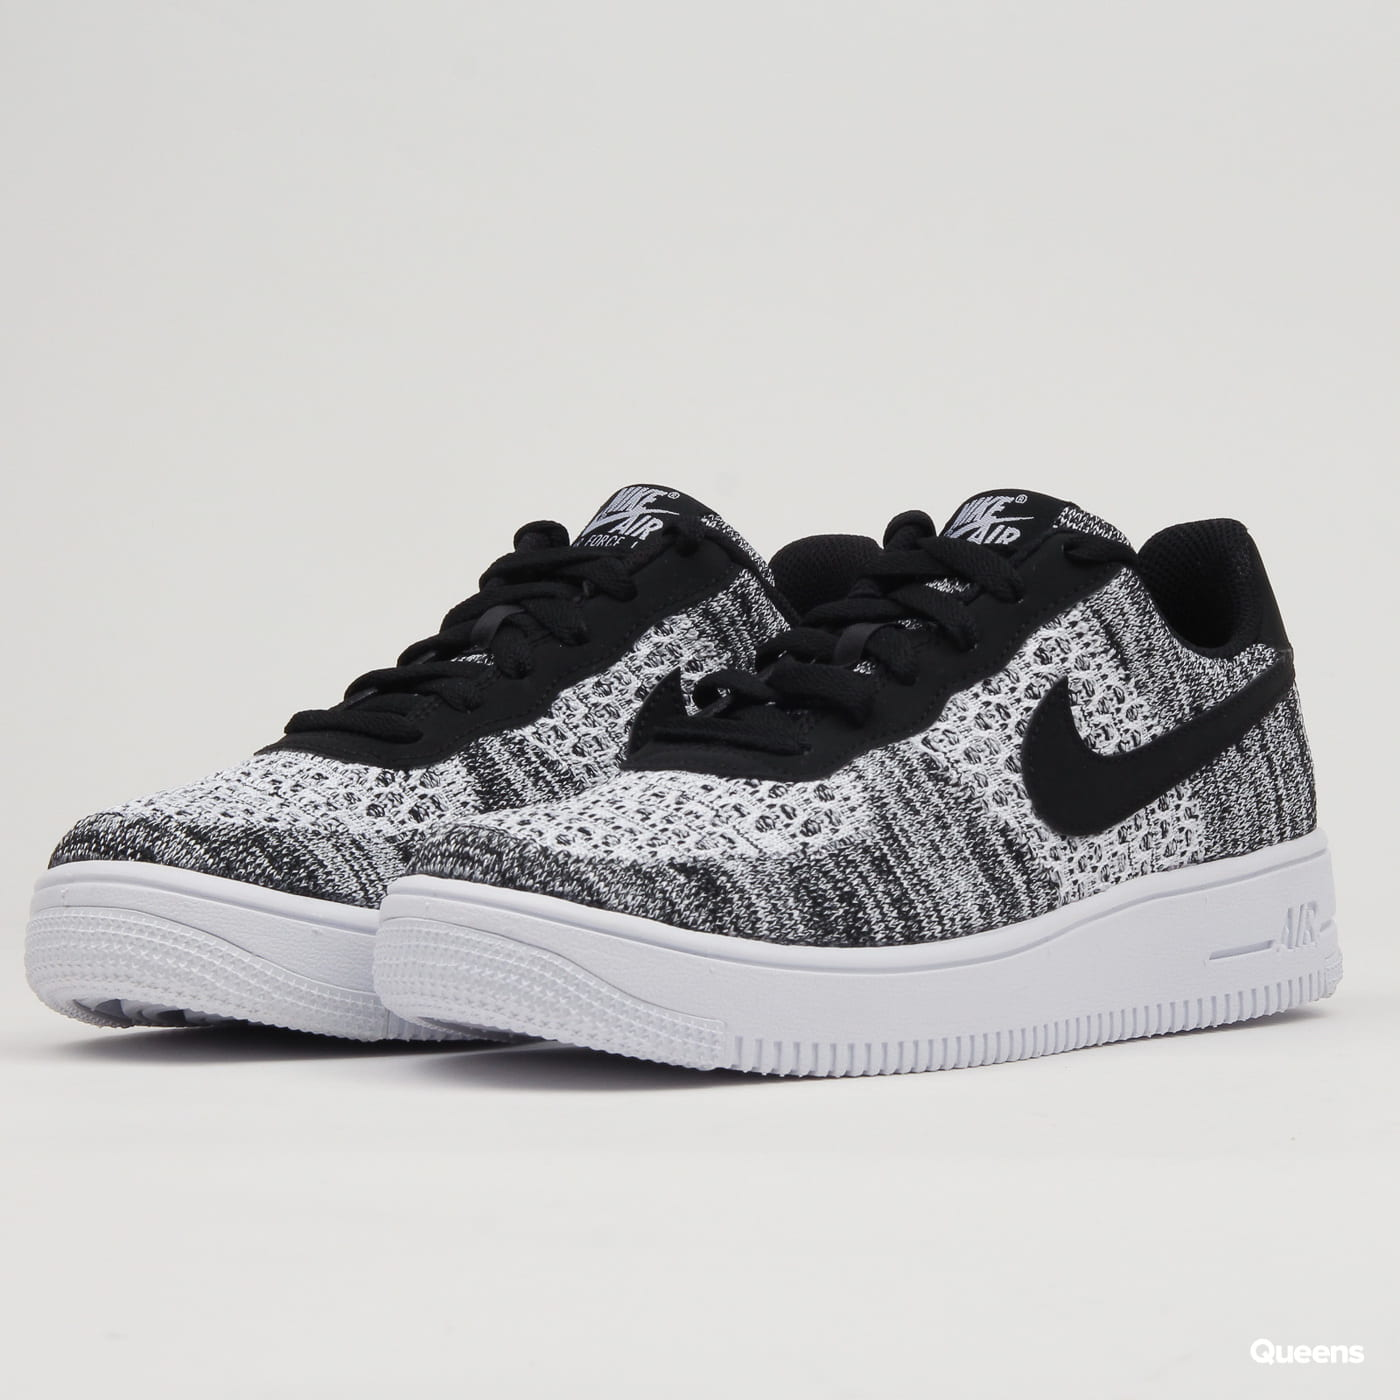 the latest a399a 3219e Nike Air Force 1 Flyknit 2.0 (GS) black   pure platinum - white  (BV0063-001) – Queens 💚